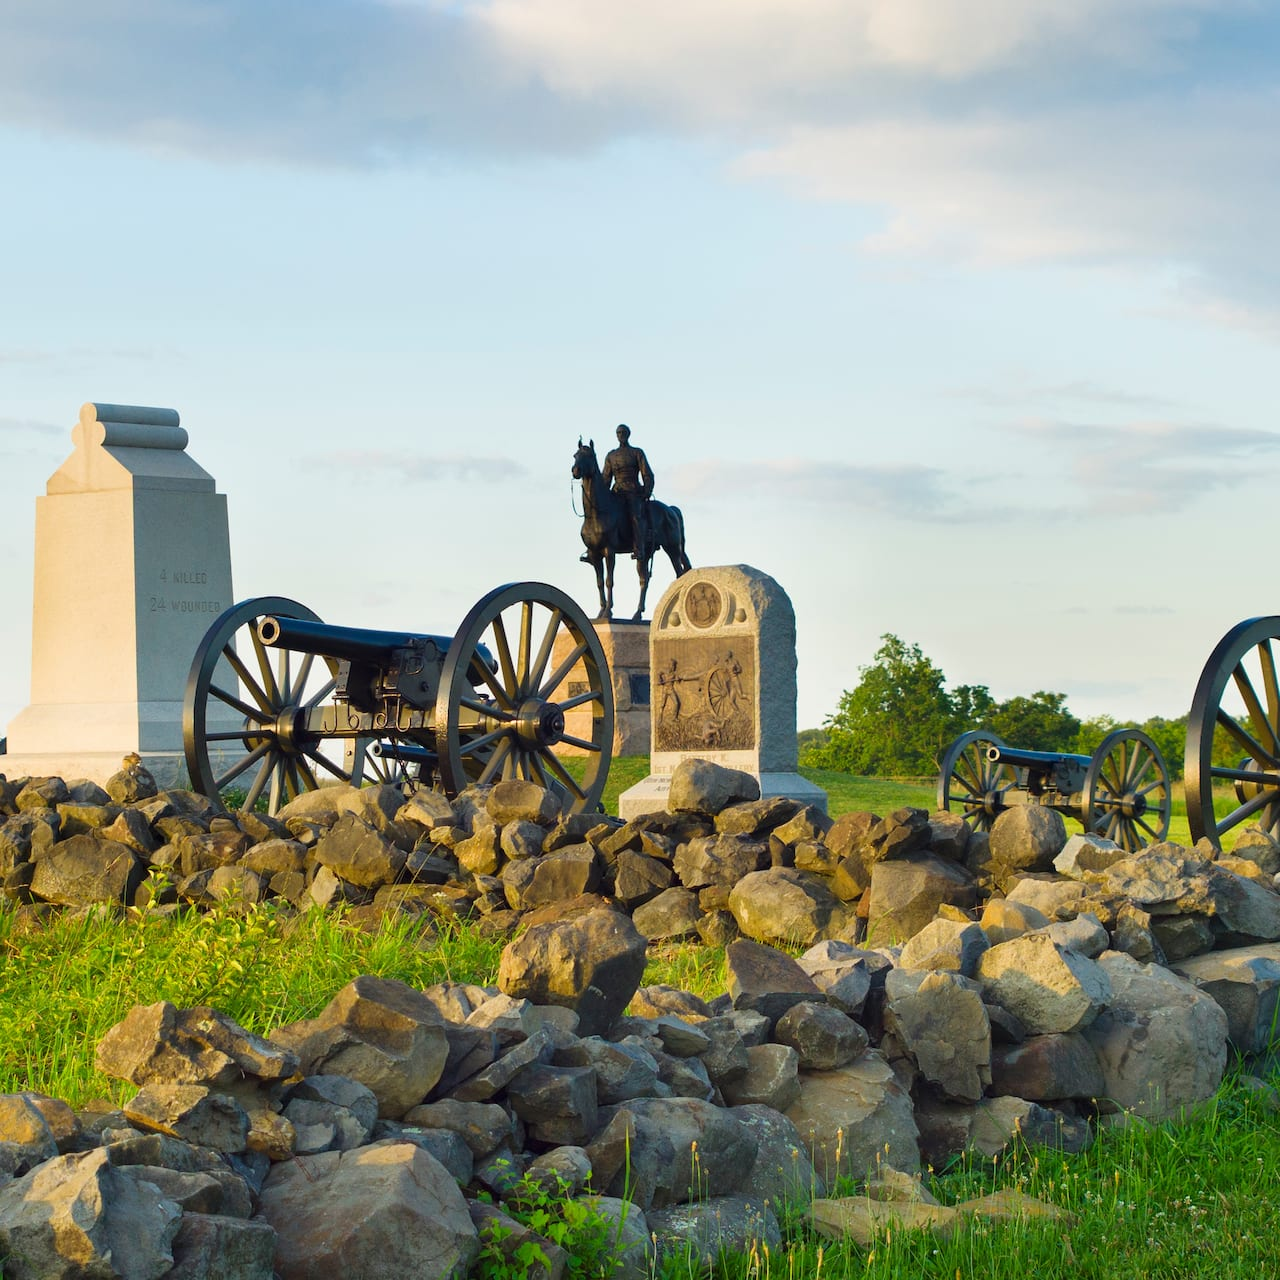 Tombstones, 3 cannons and a statue of a man on a horse at Gettysburg National Military Park